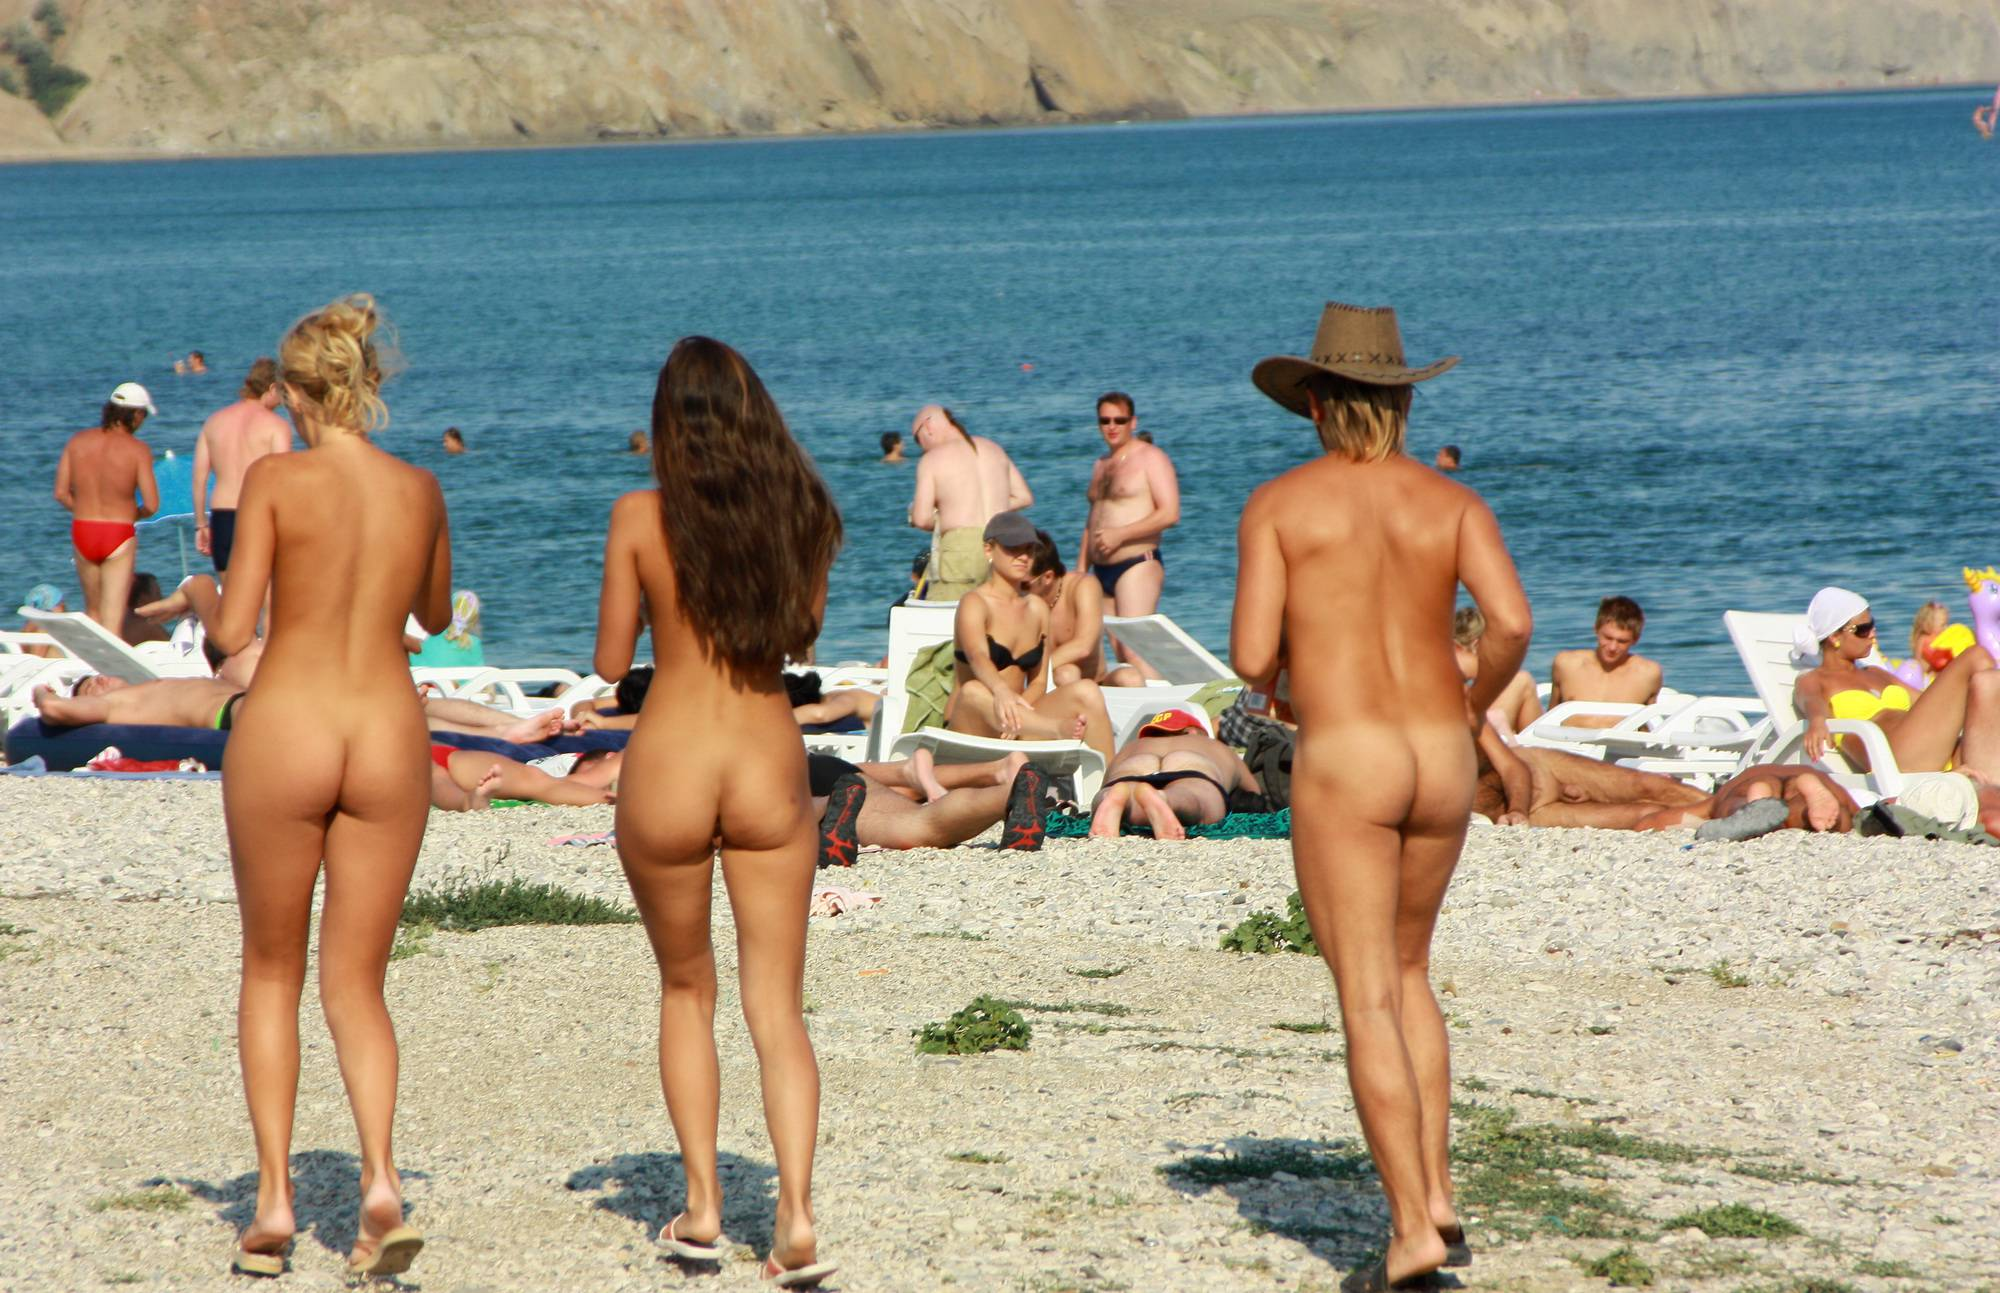 Nudist Photos Ukraine Beach Collection - 1